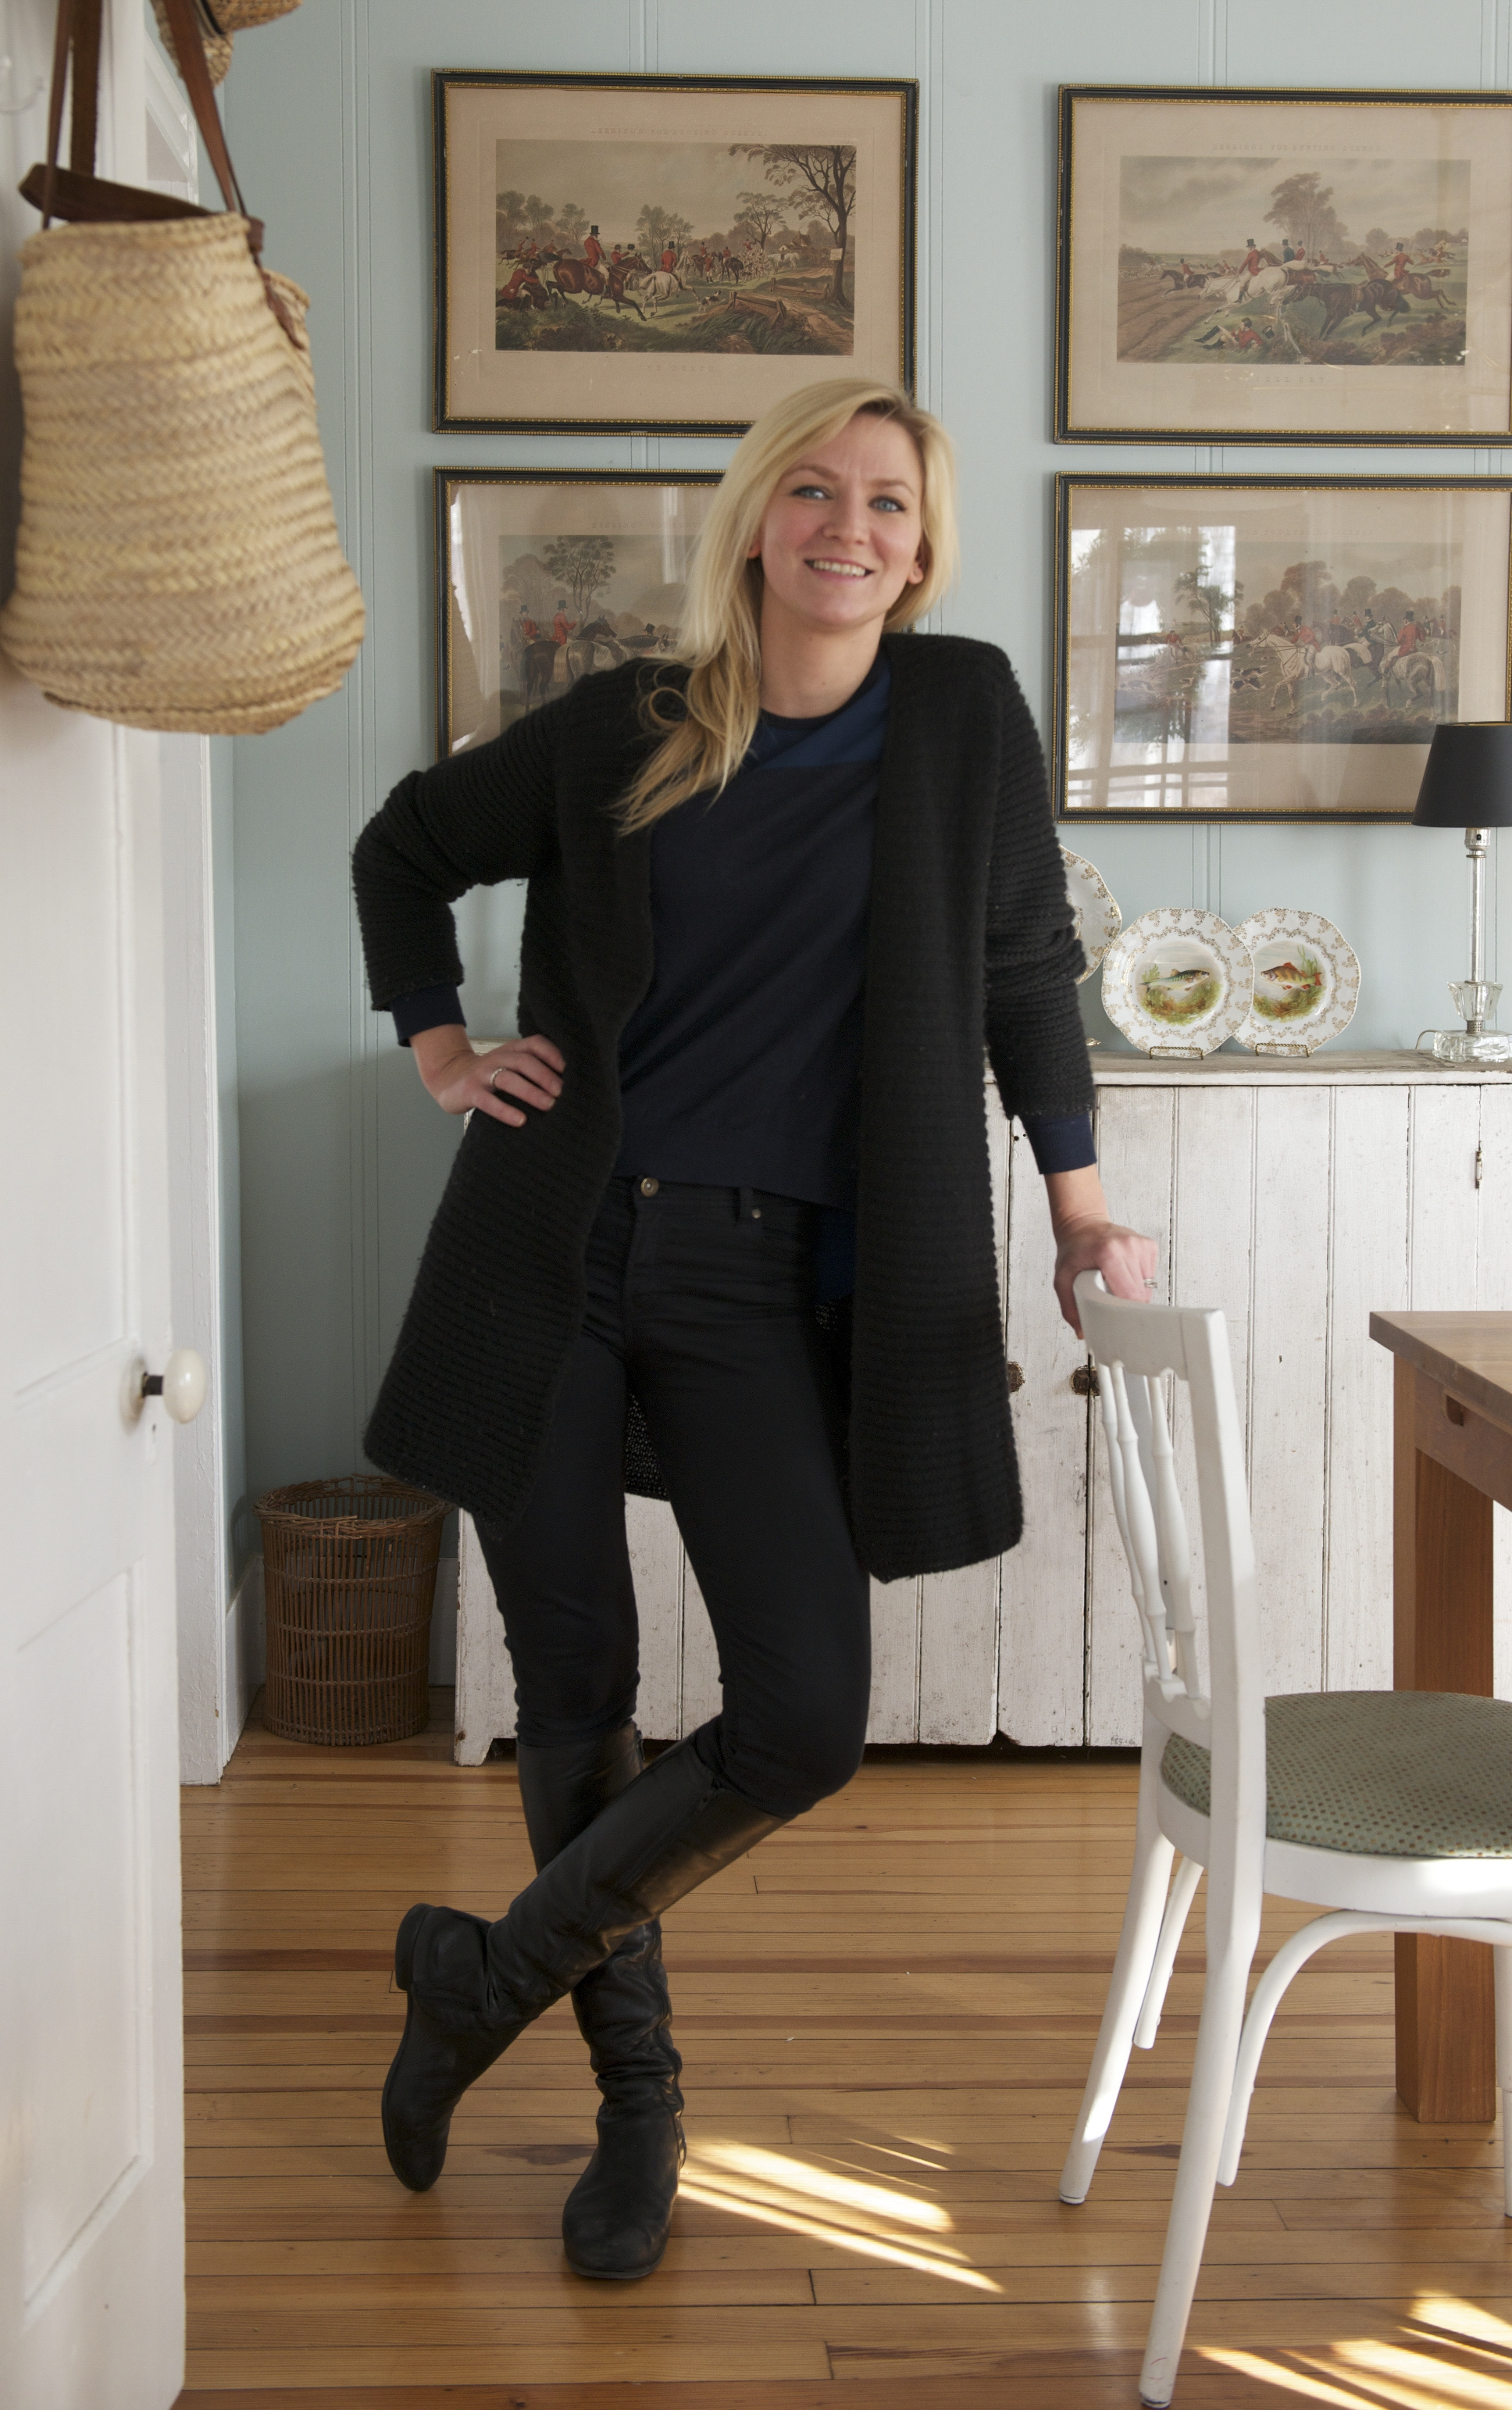 Christina Salway in the dining room of her home near Callicoon, N.Y., Jan. 7, 2015. Salway and her husband spotted the dilapidated farmhouse in a real estate office and renovated it into a home. (Jane Beiles/The New York Times)